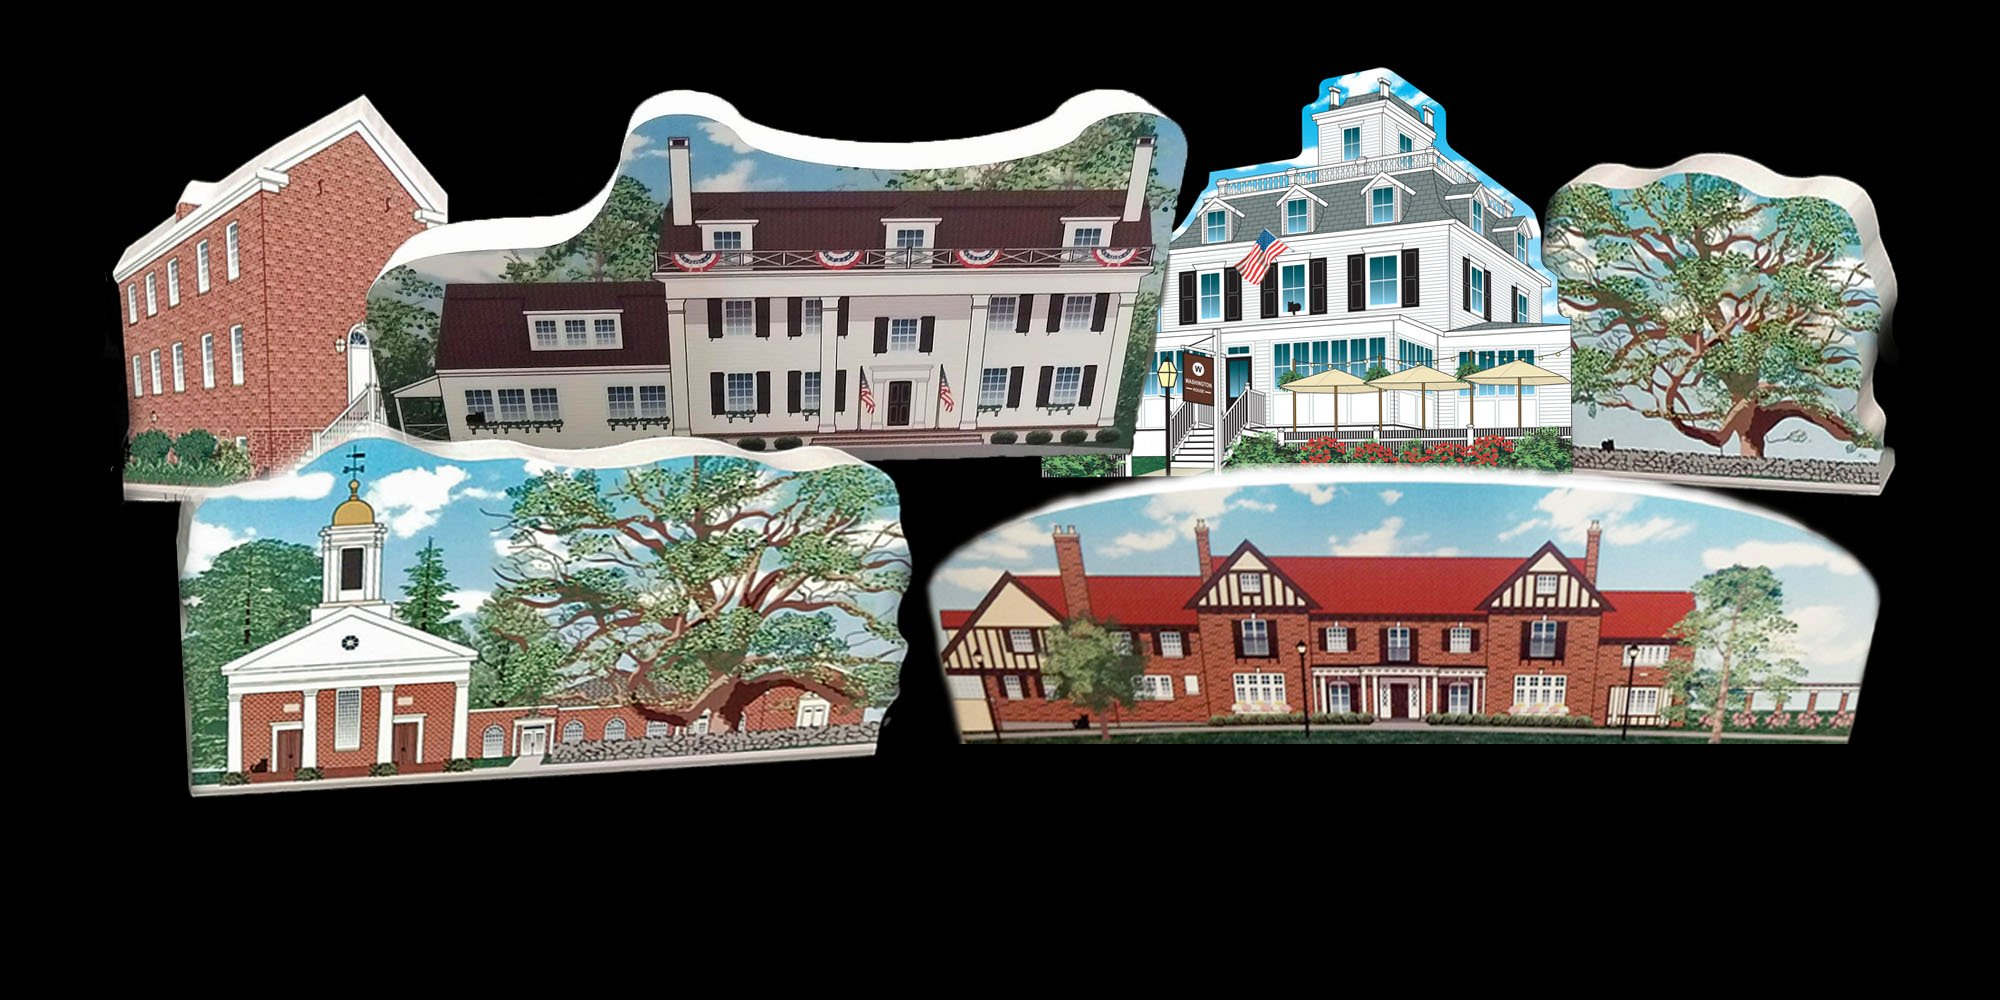 The Cat's Meow is one of the worlds most iconic collectible series. Mr. Local History started creating the Somerset Hills Historic Village back in 2018. Each year we launch new additions based on community input.